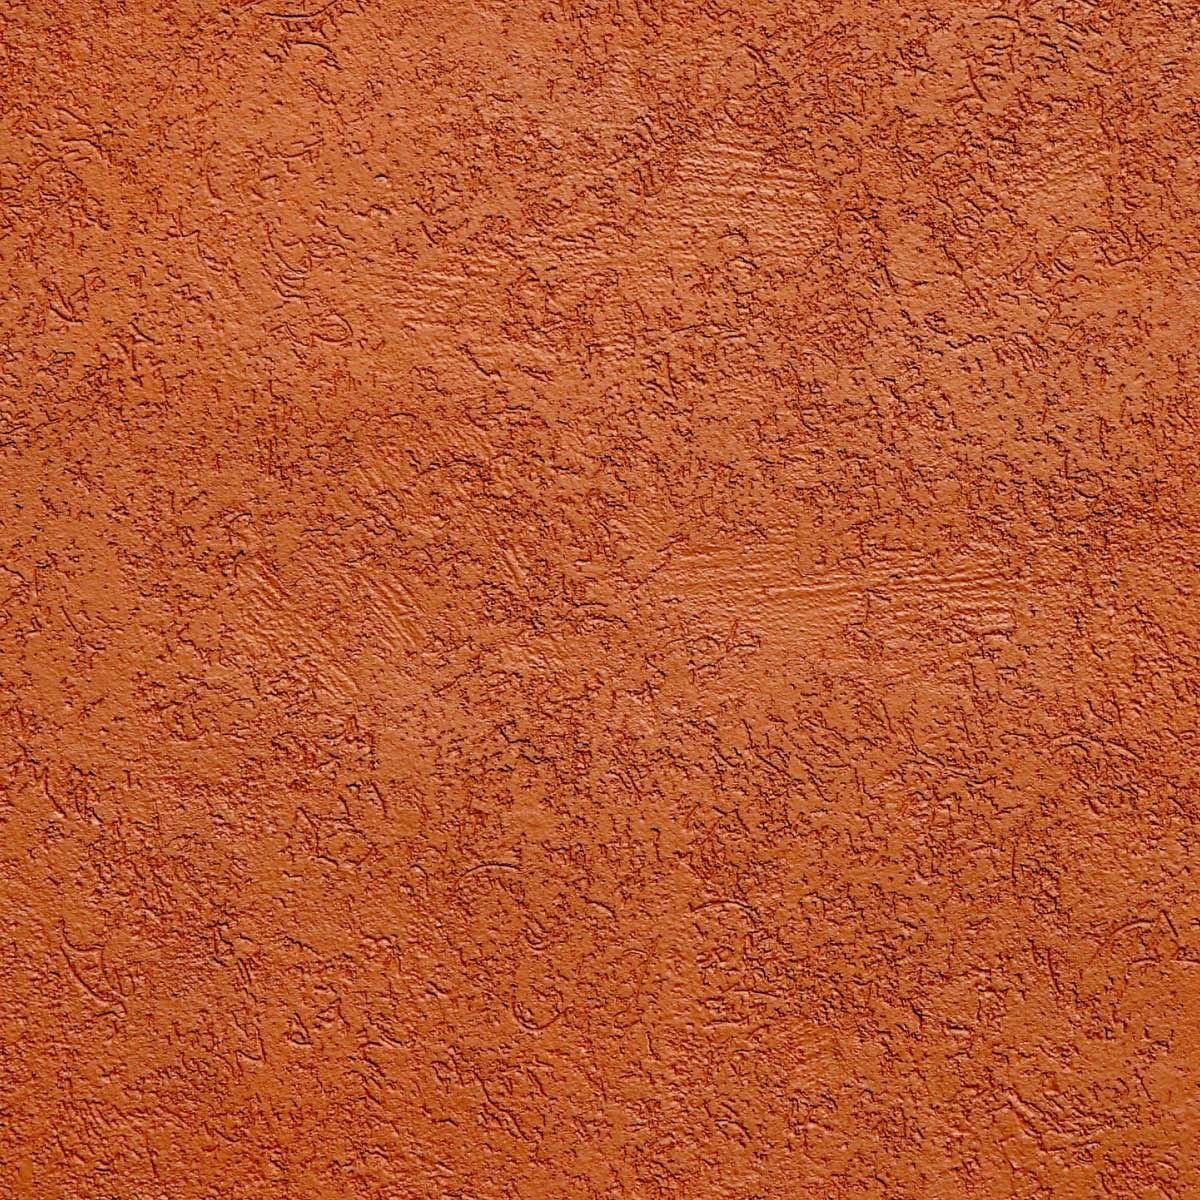 Contrast Between Stone And Plaster Finish: Rust Colored Textured Stucco Wall.